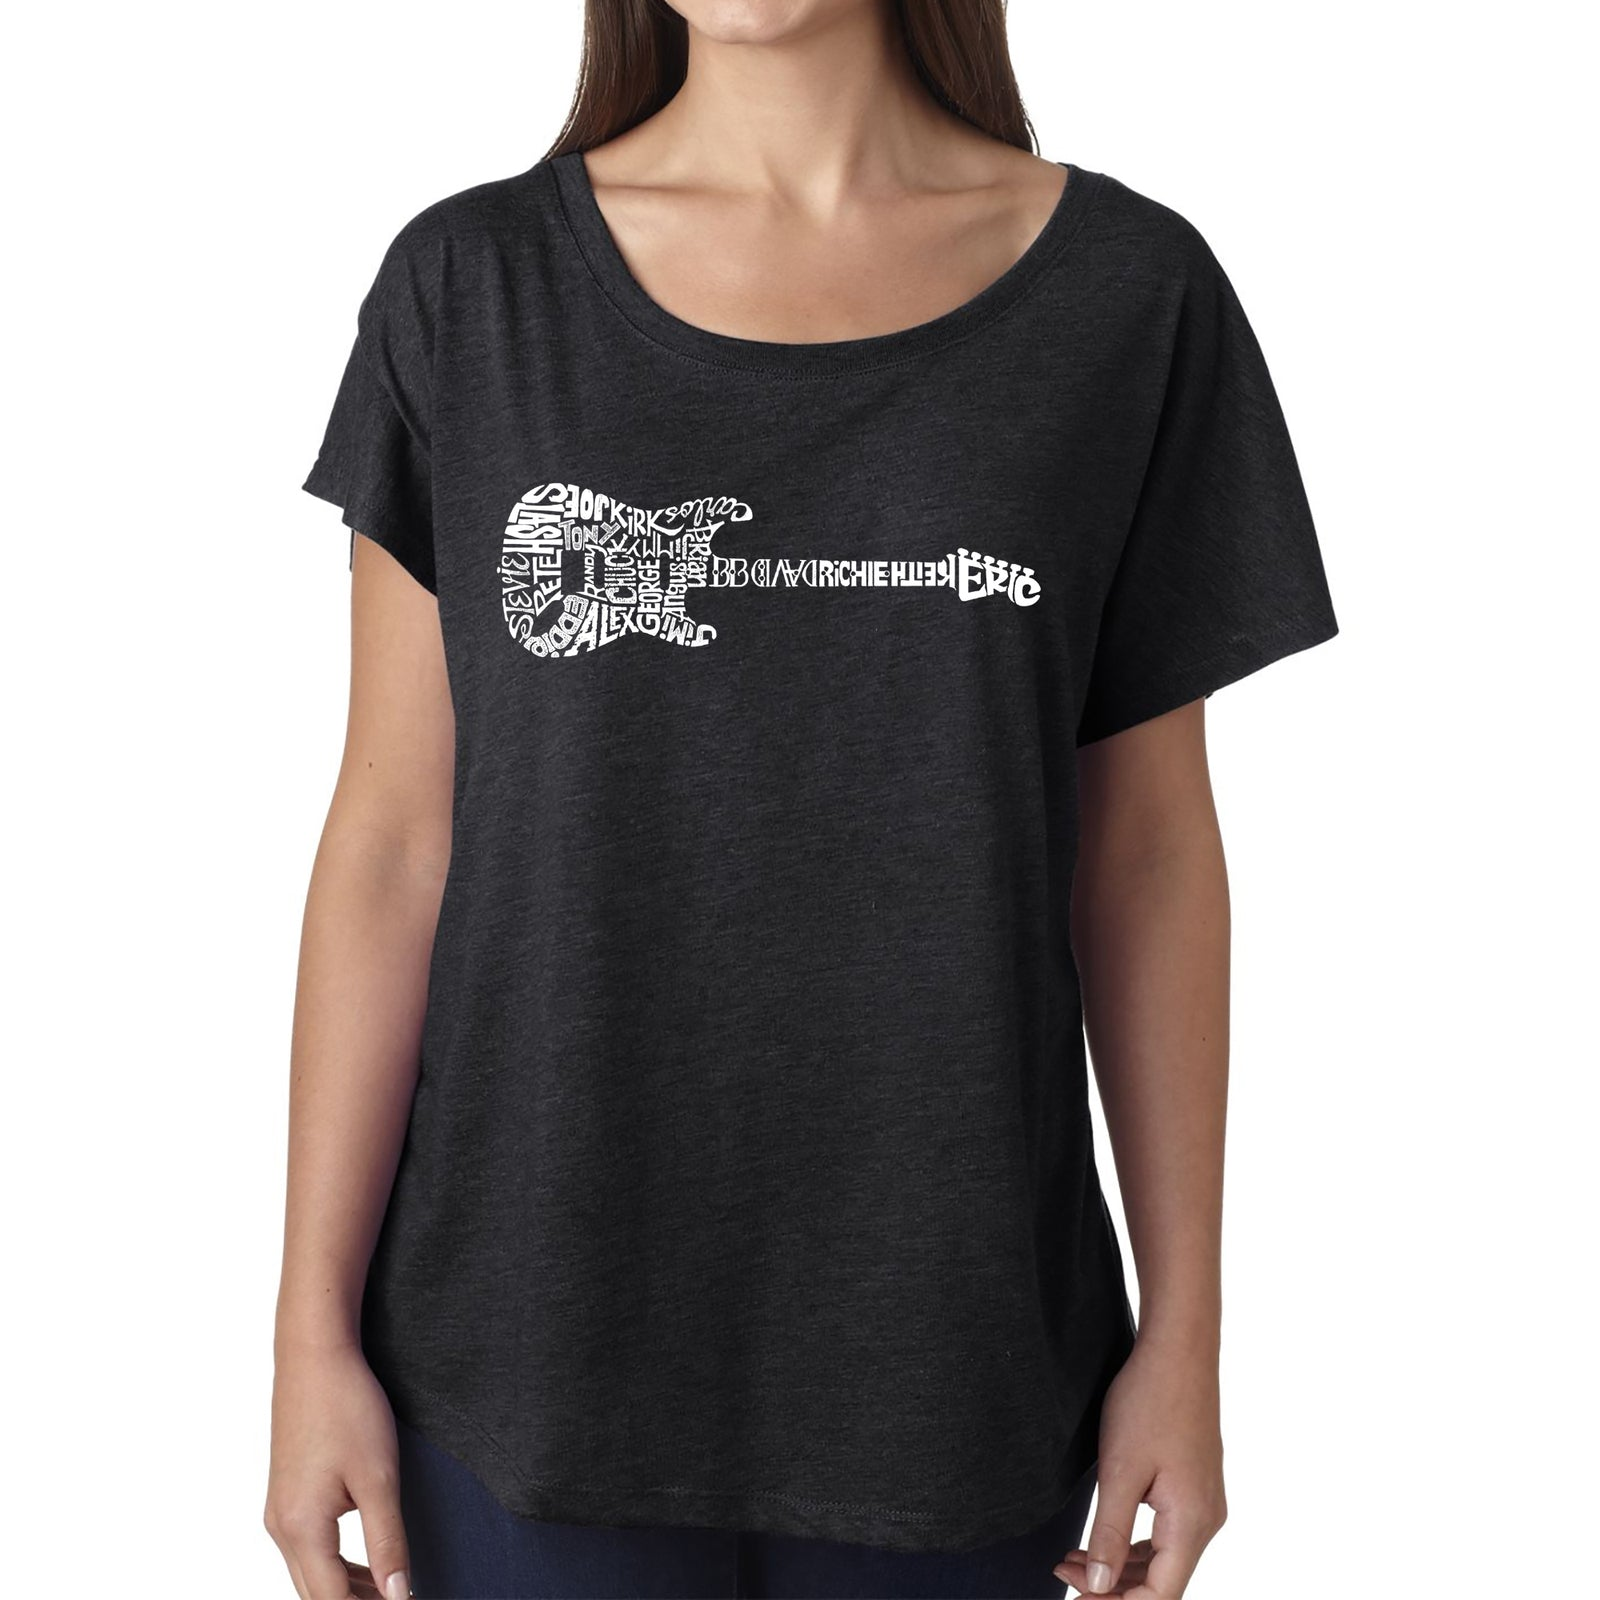 Women's Loose Fit Dolman Cut Word Art Shirt - Rock Guitar